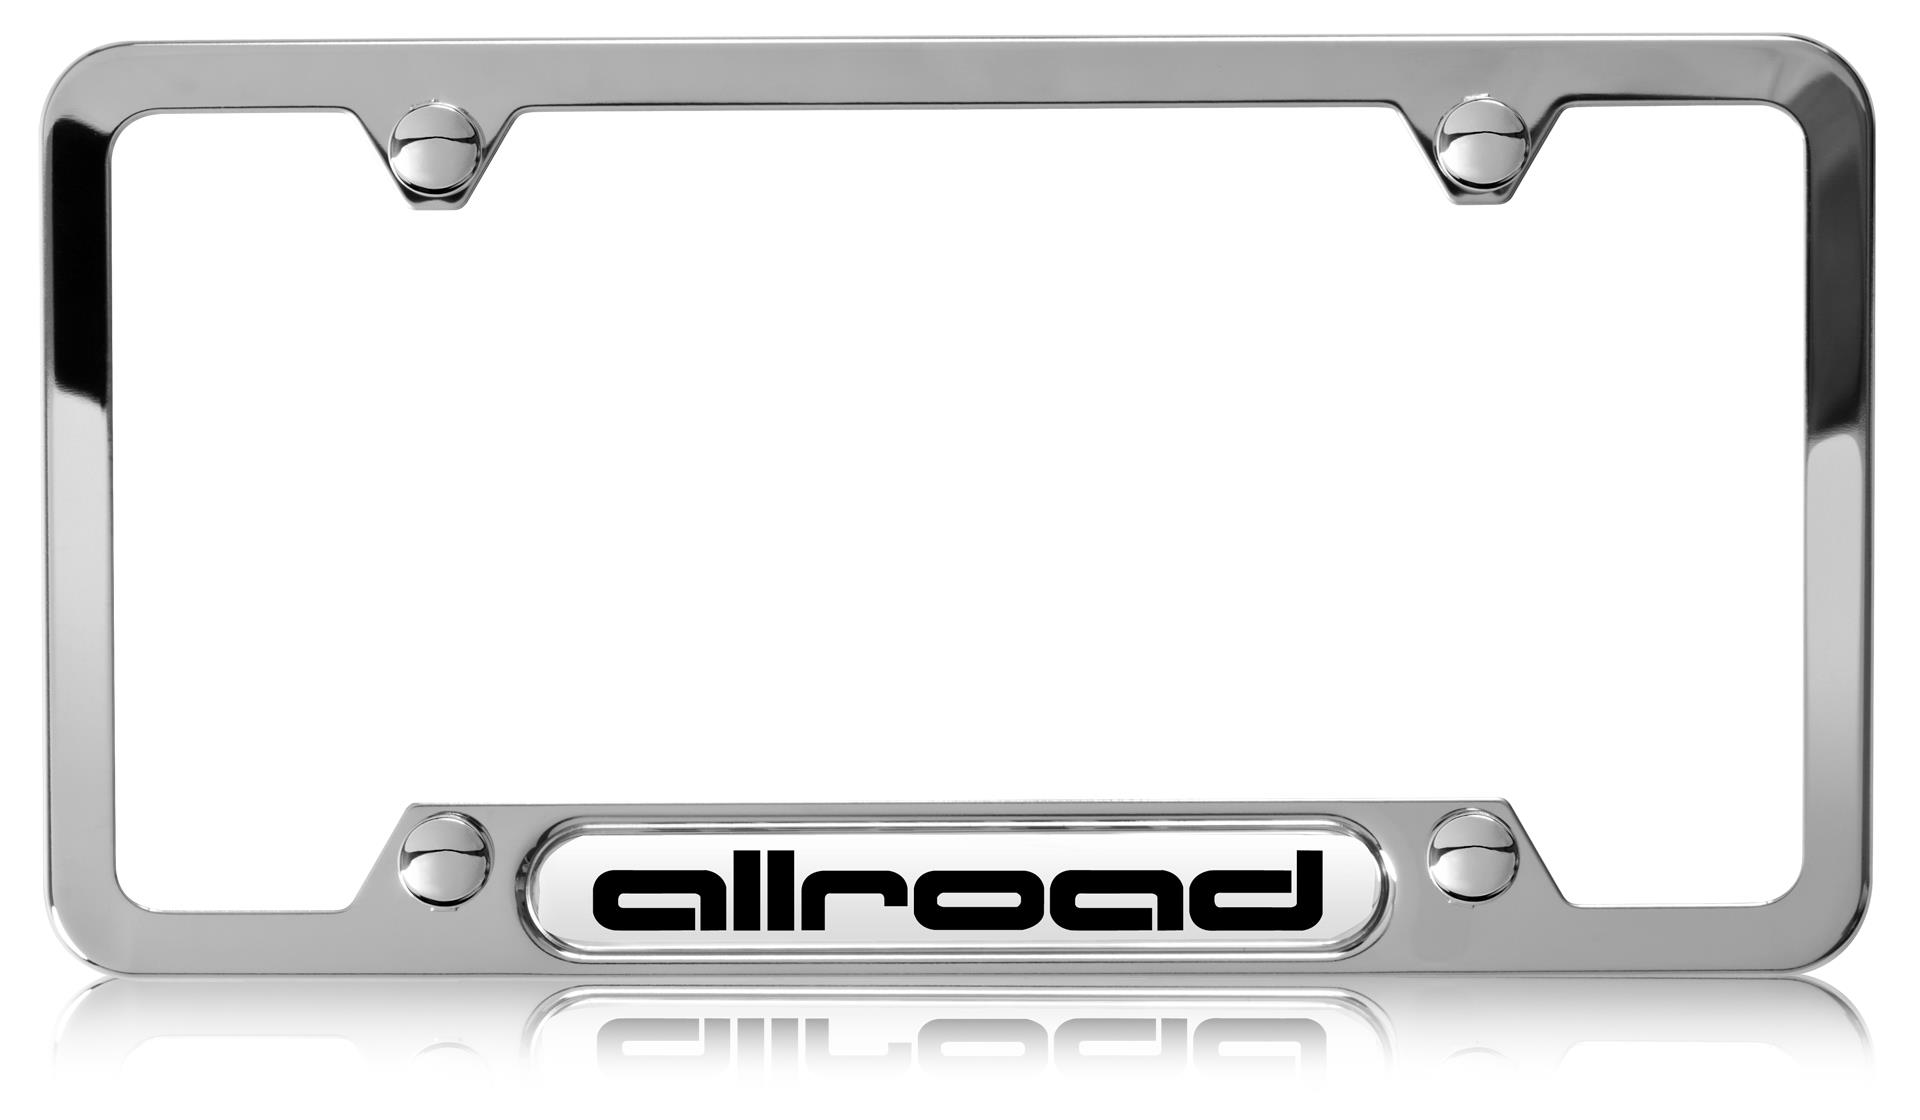 Audi License Plate Frame Audi Q5 Audi Rings License Plate Frame ...